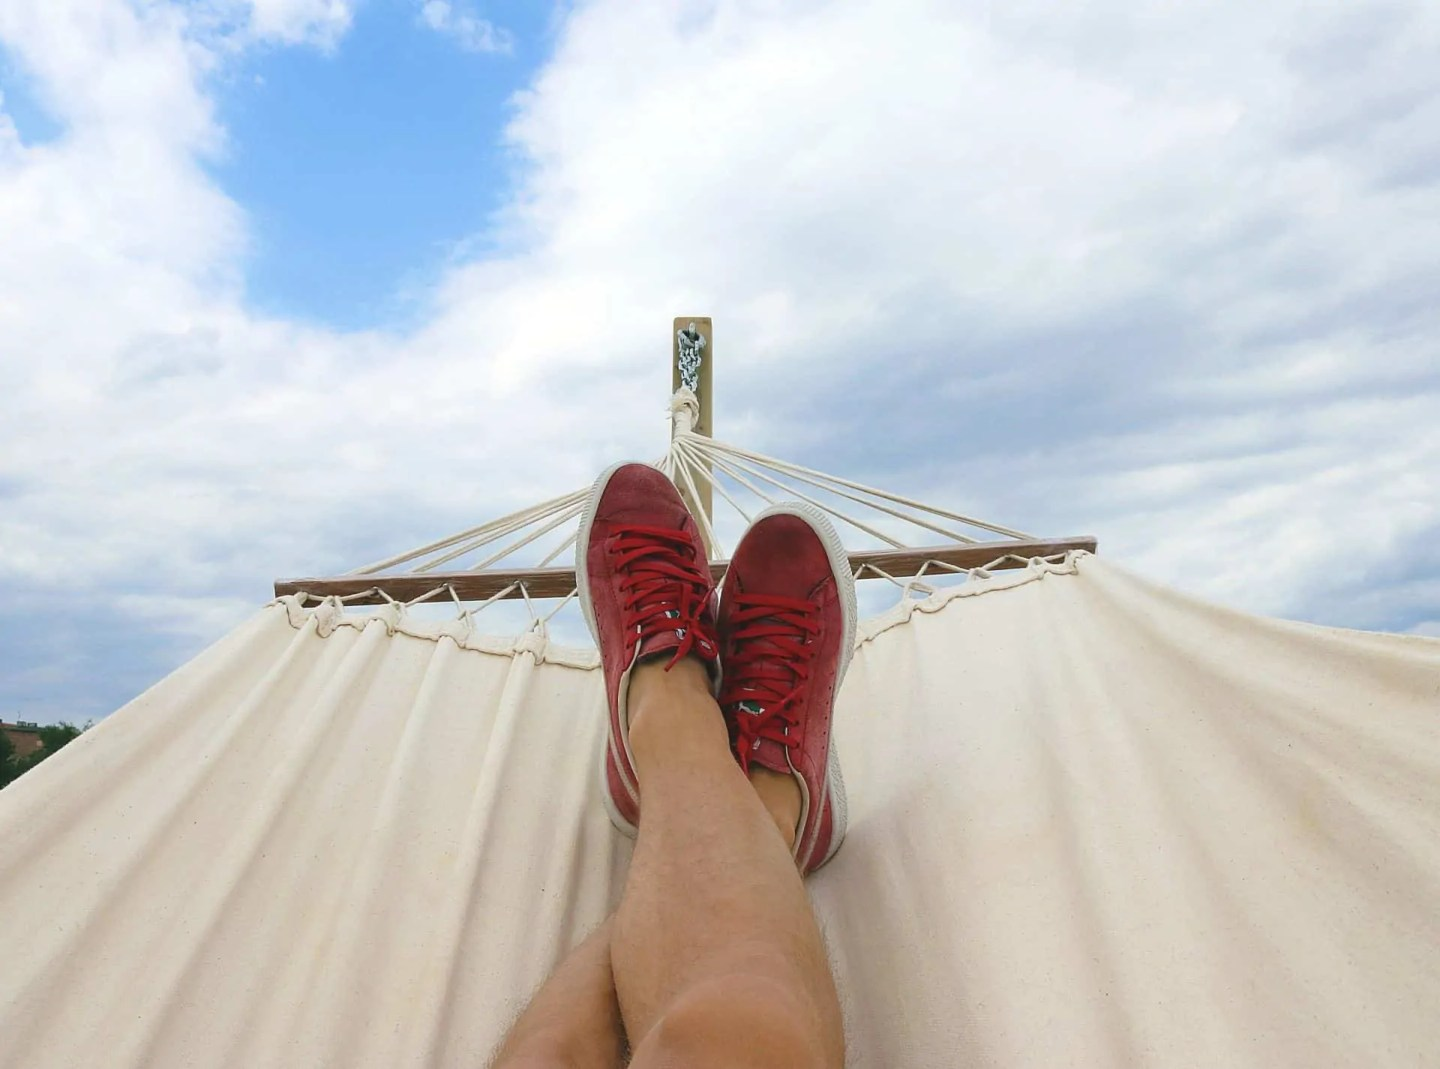 person with feet on hammock